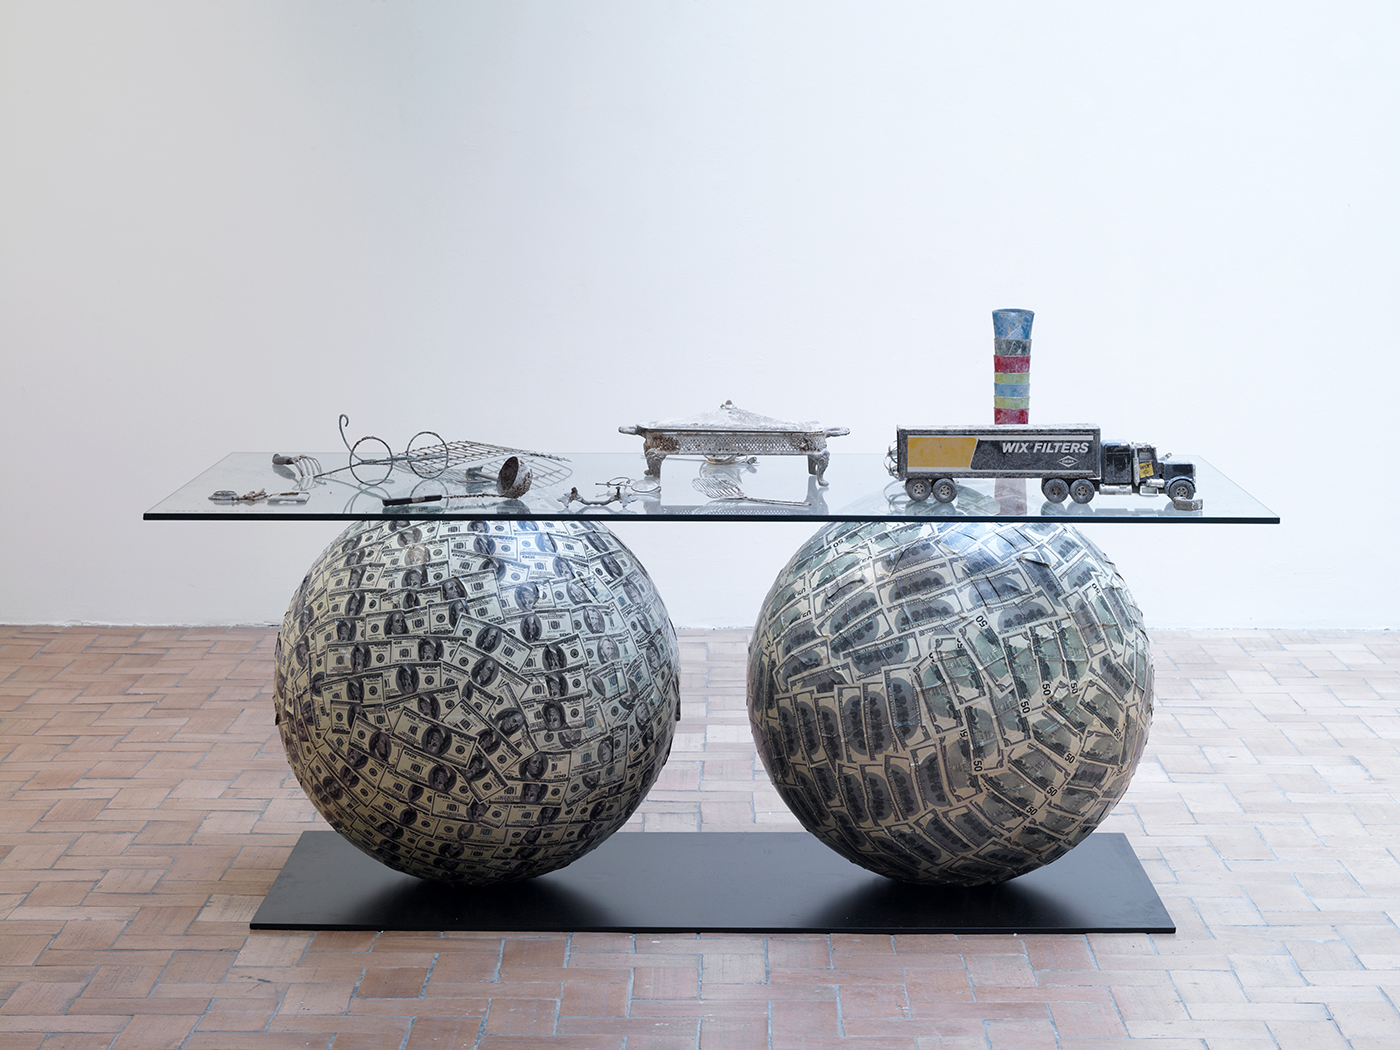 Meschac Gaba - Archéologie contemporaine 2, 2003